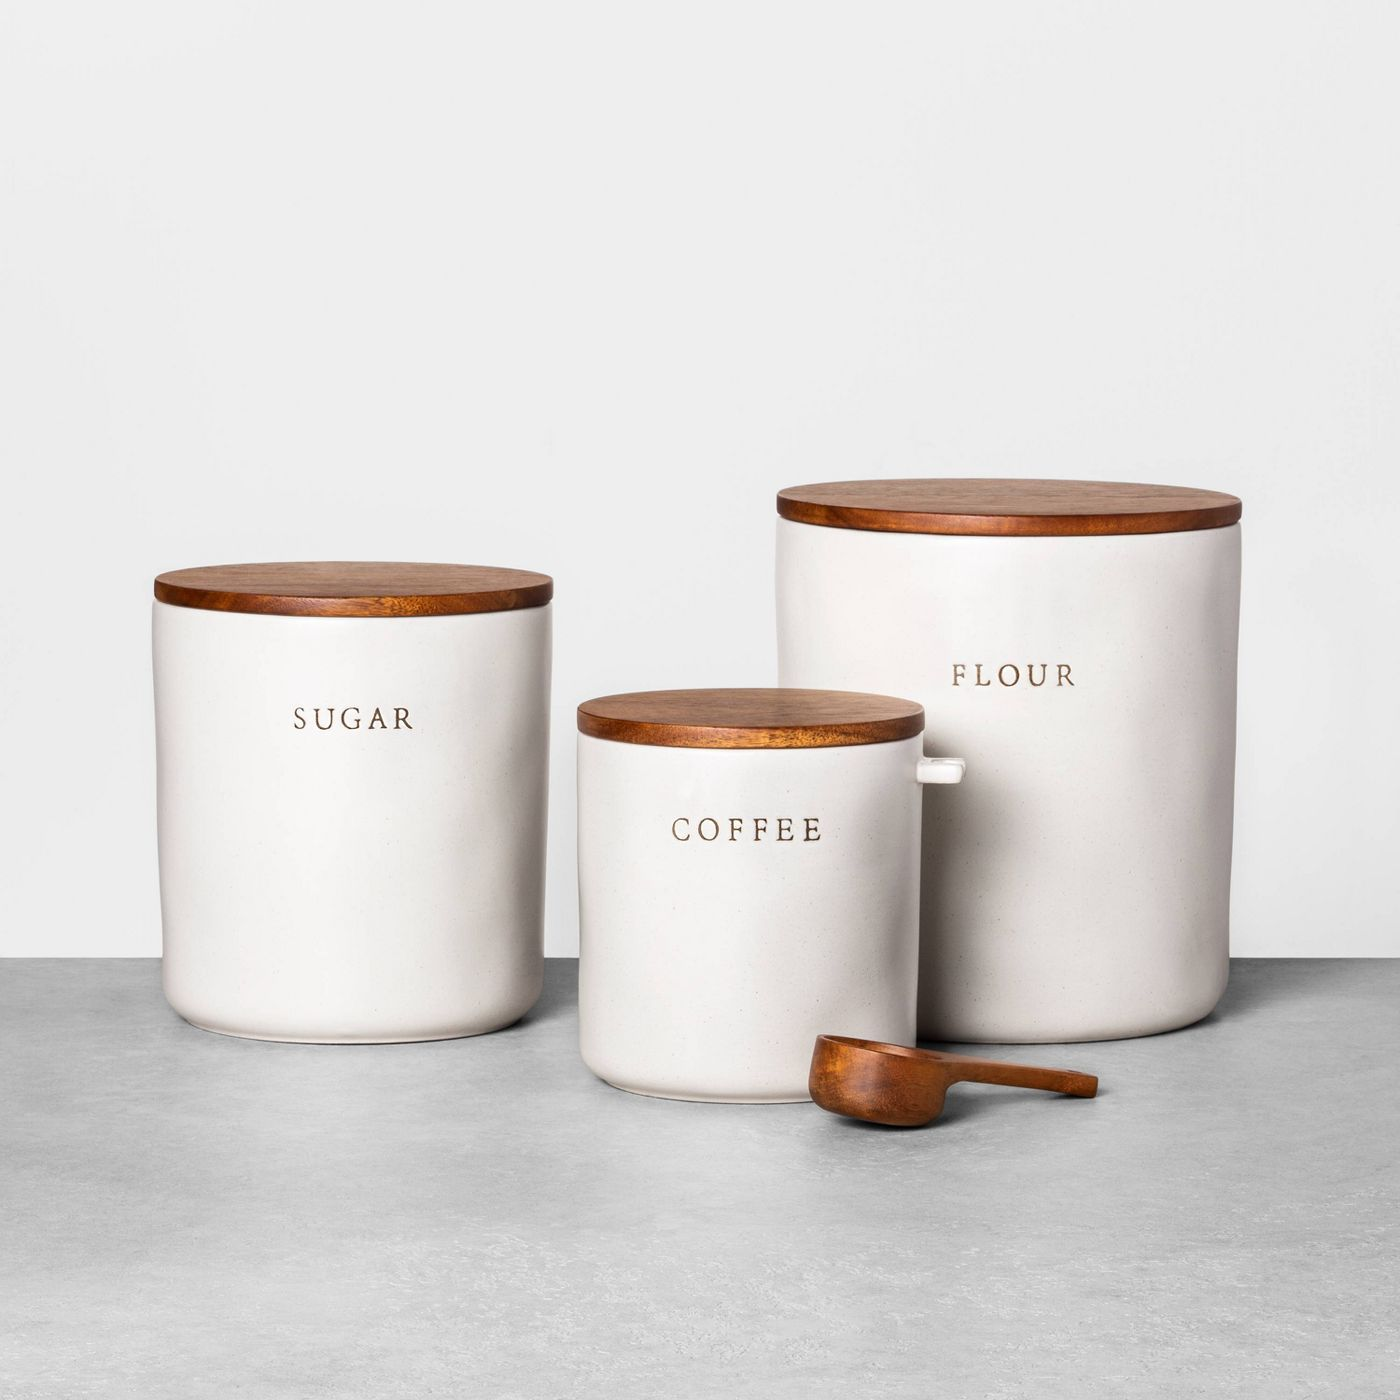 Hearth & Hand with Magnolia Sugar Stoneware Canister with Wood Lid